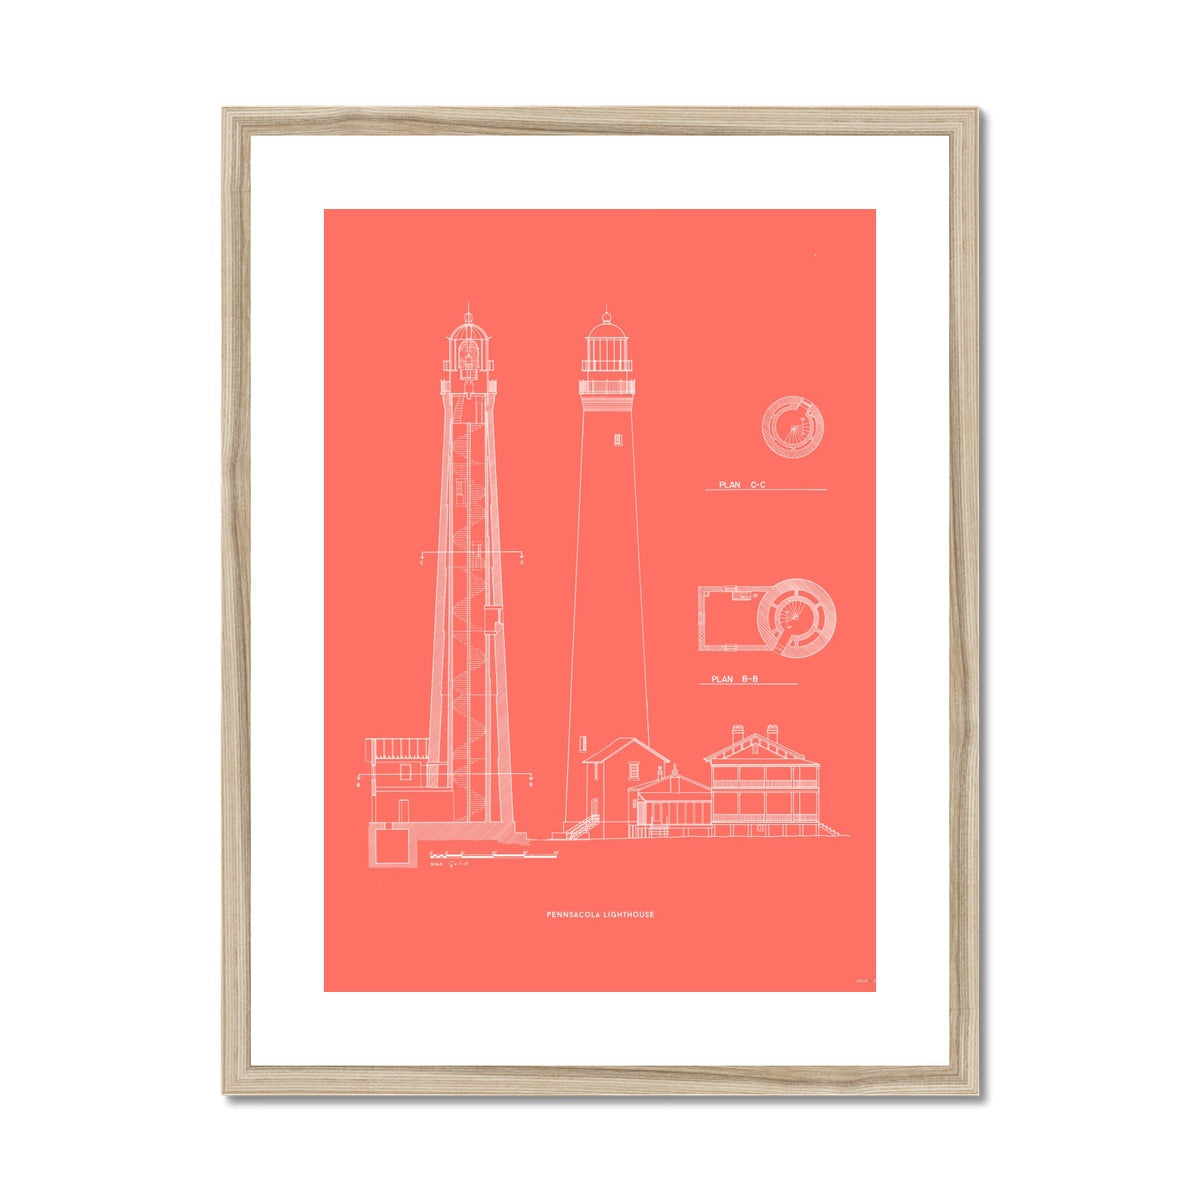 The Pensacola Lighthouse - West Elevation and Cross Section - Red -  Framed & Mounted Print